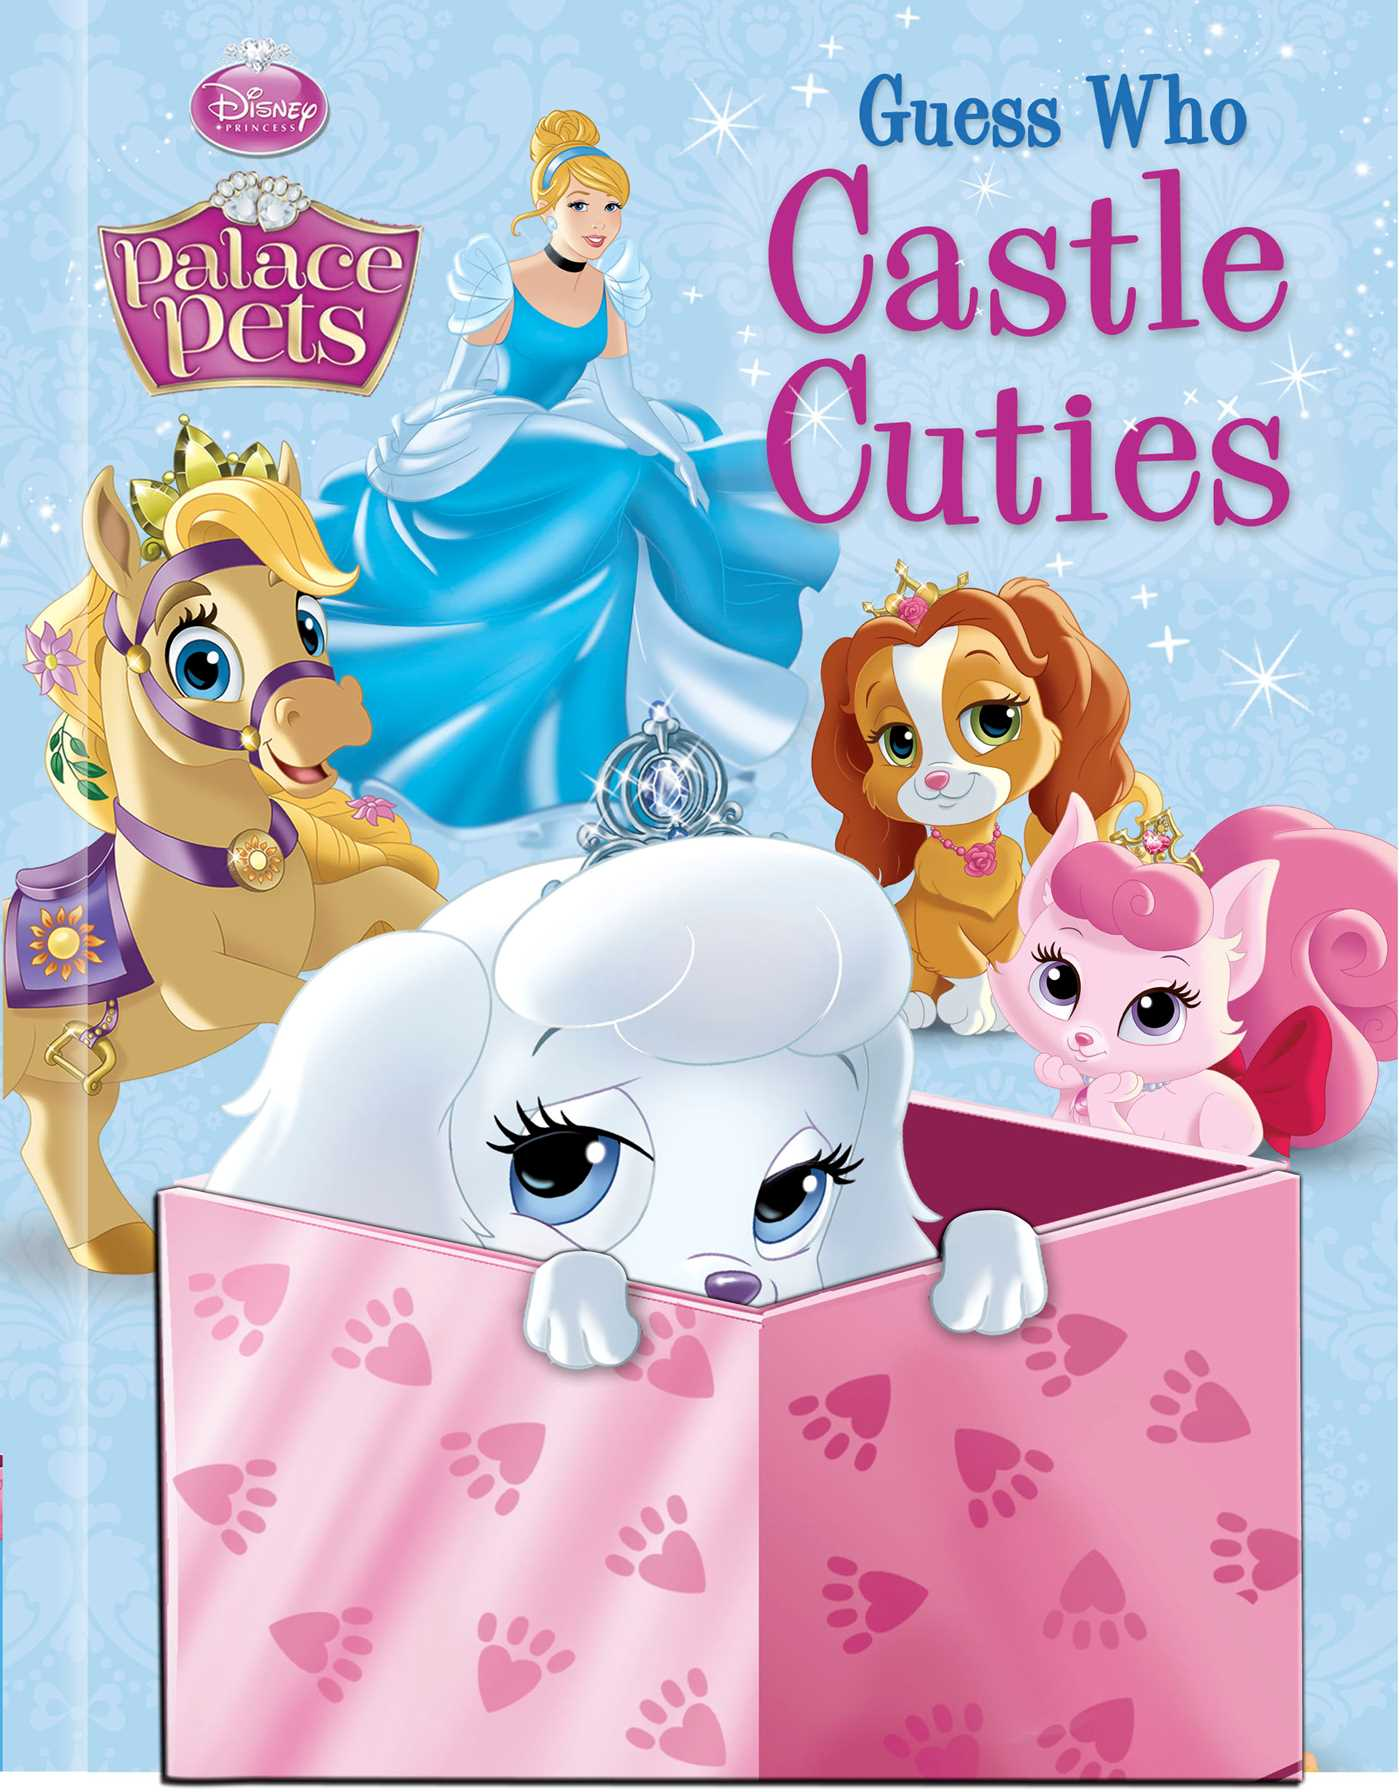 Disney palace pets guess who castle cuties 9780794431921 hr